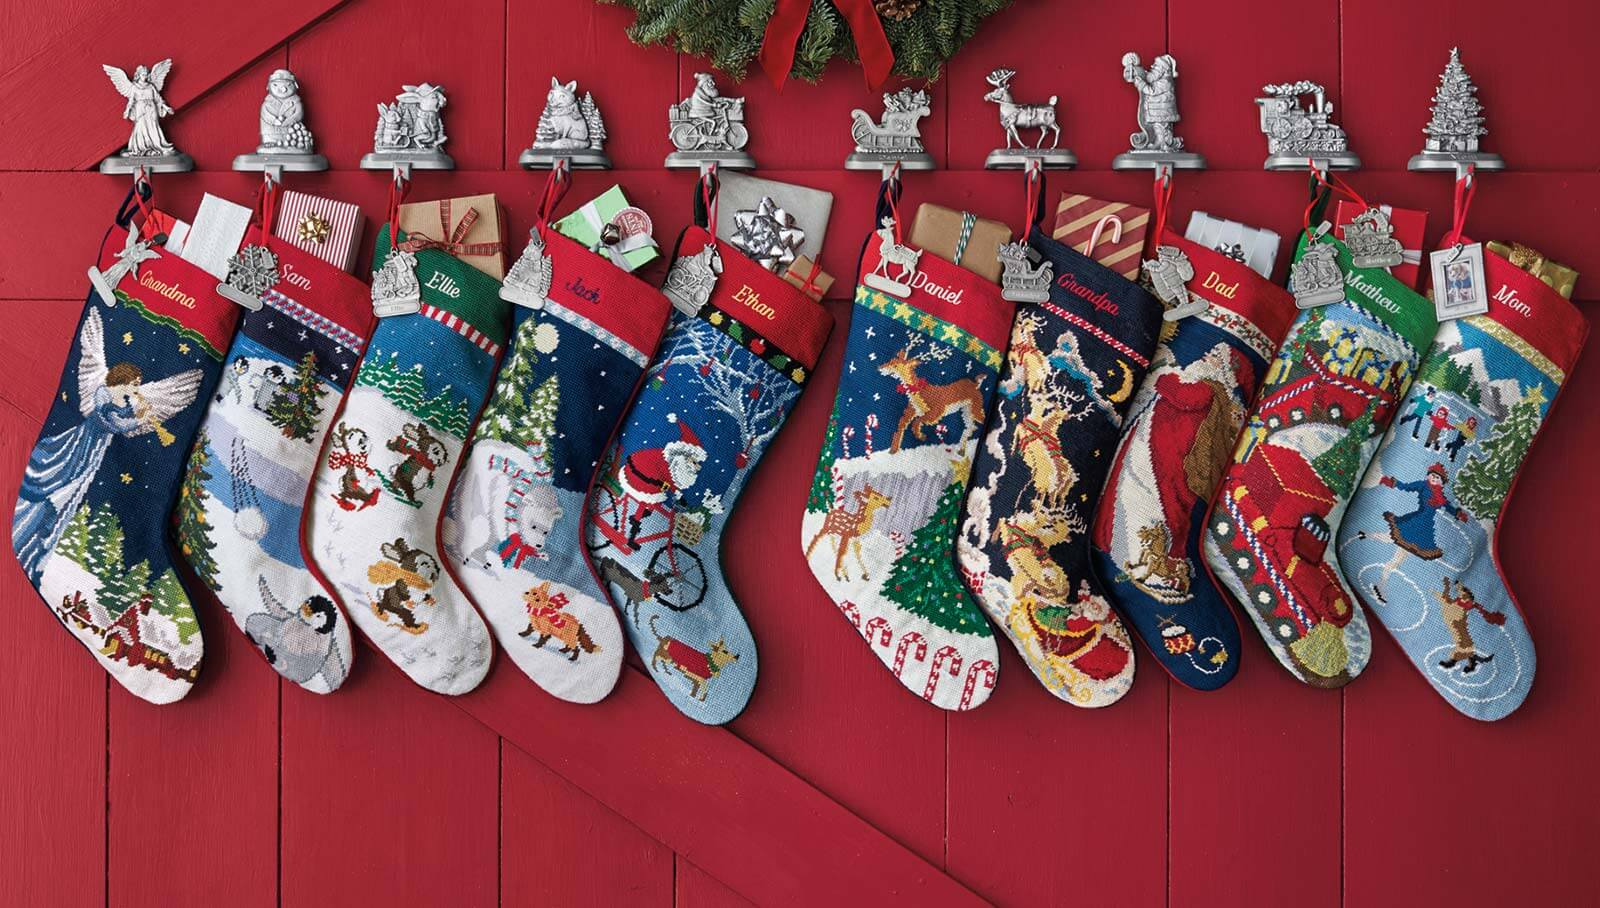 Lands End Christmas Stockings.50 Off Stockings Holders Ornaments At Lands End Free